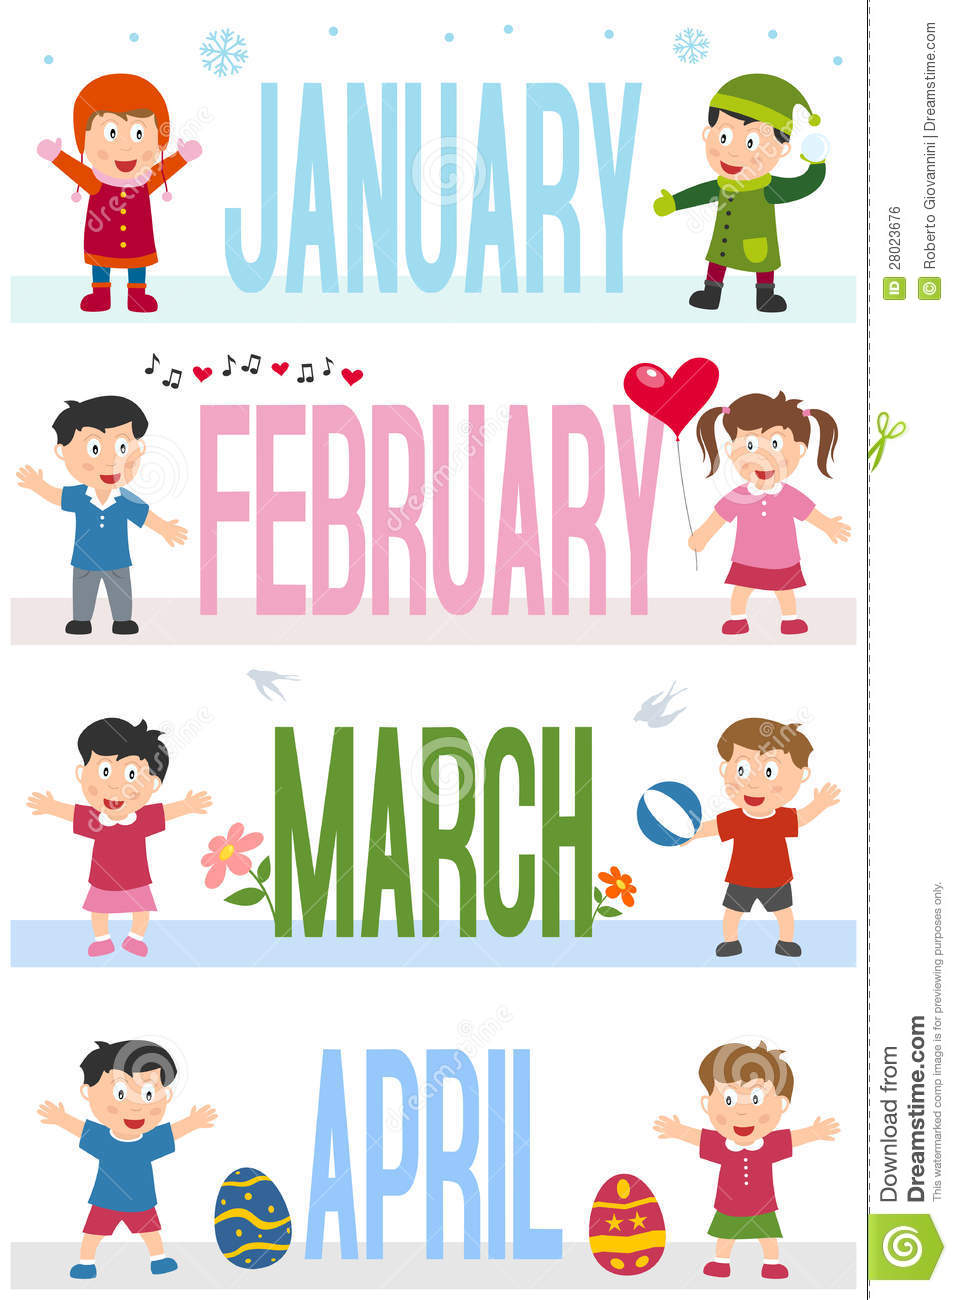 ... and the months January, February, March and April. Eps file available